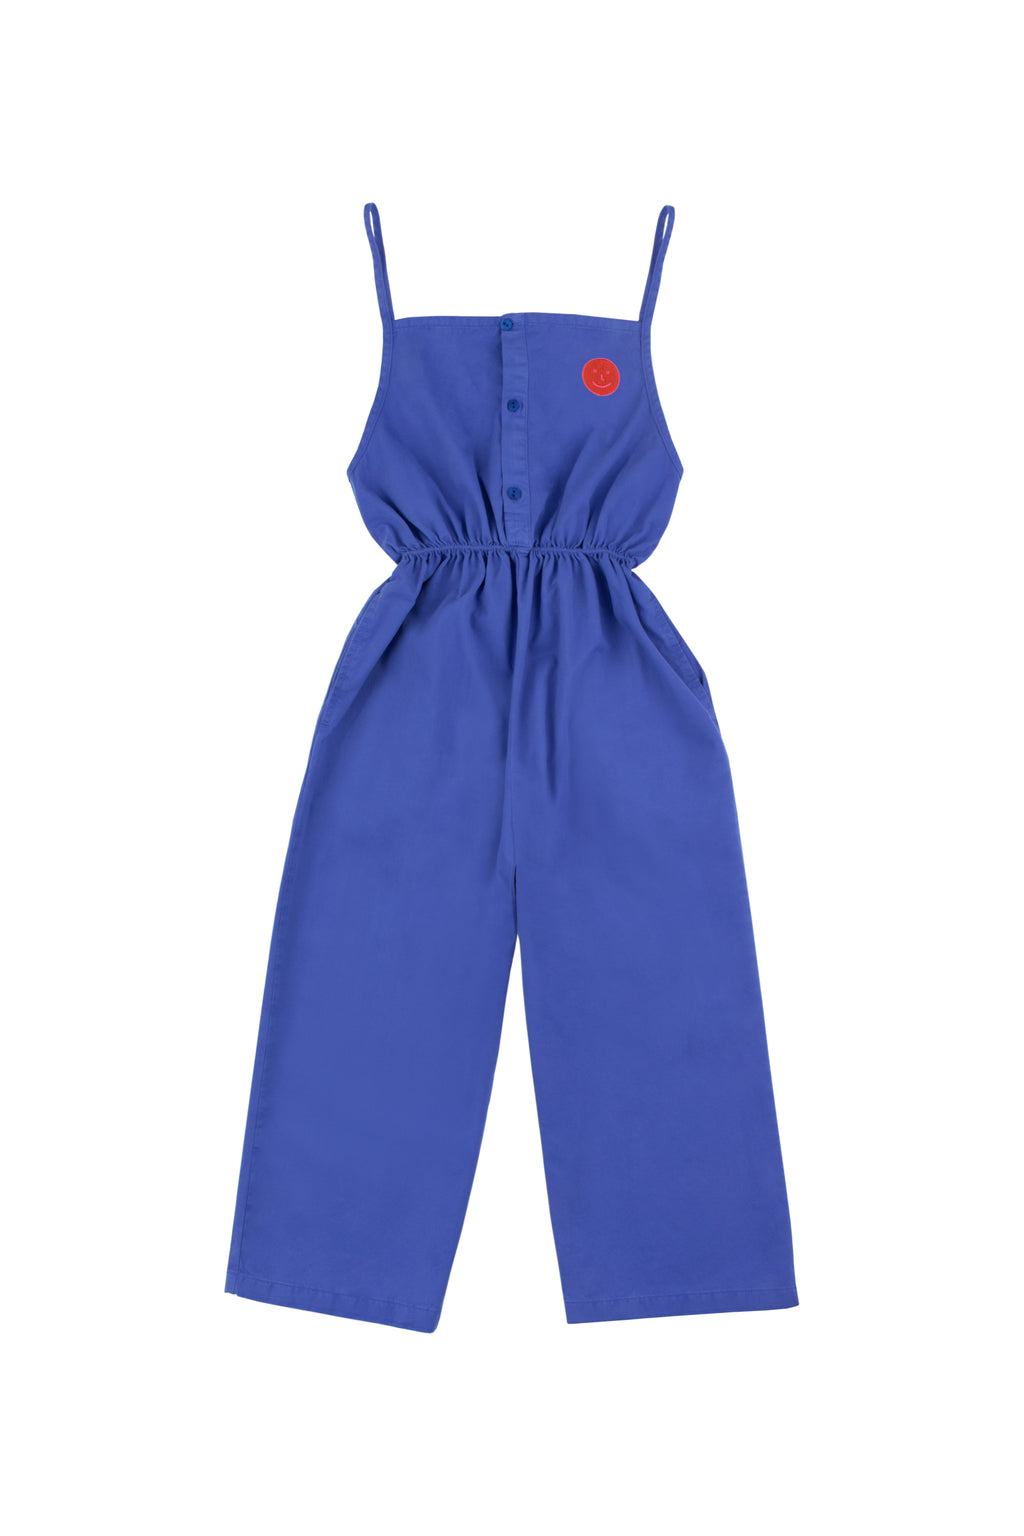 Tiny Cottons Happy Face Braces Long Jumpsuit - Ultramarine/red